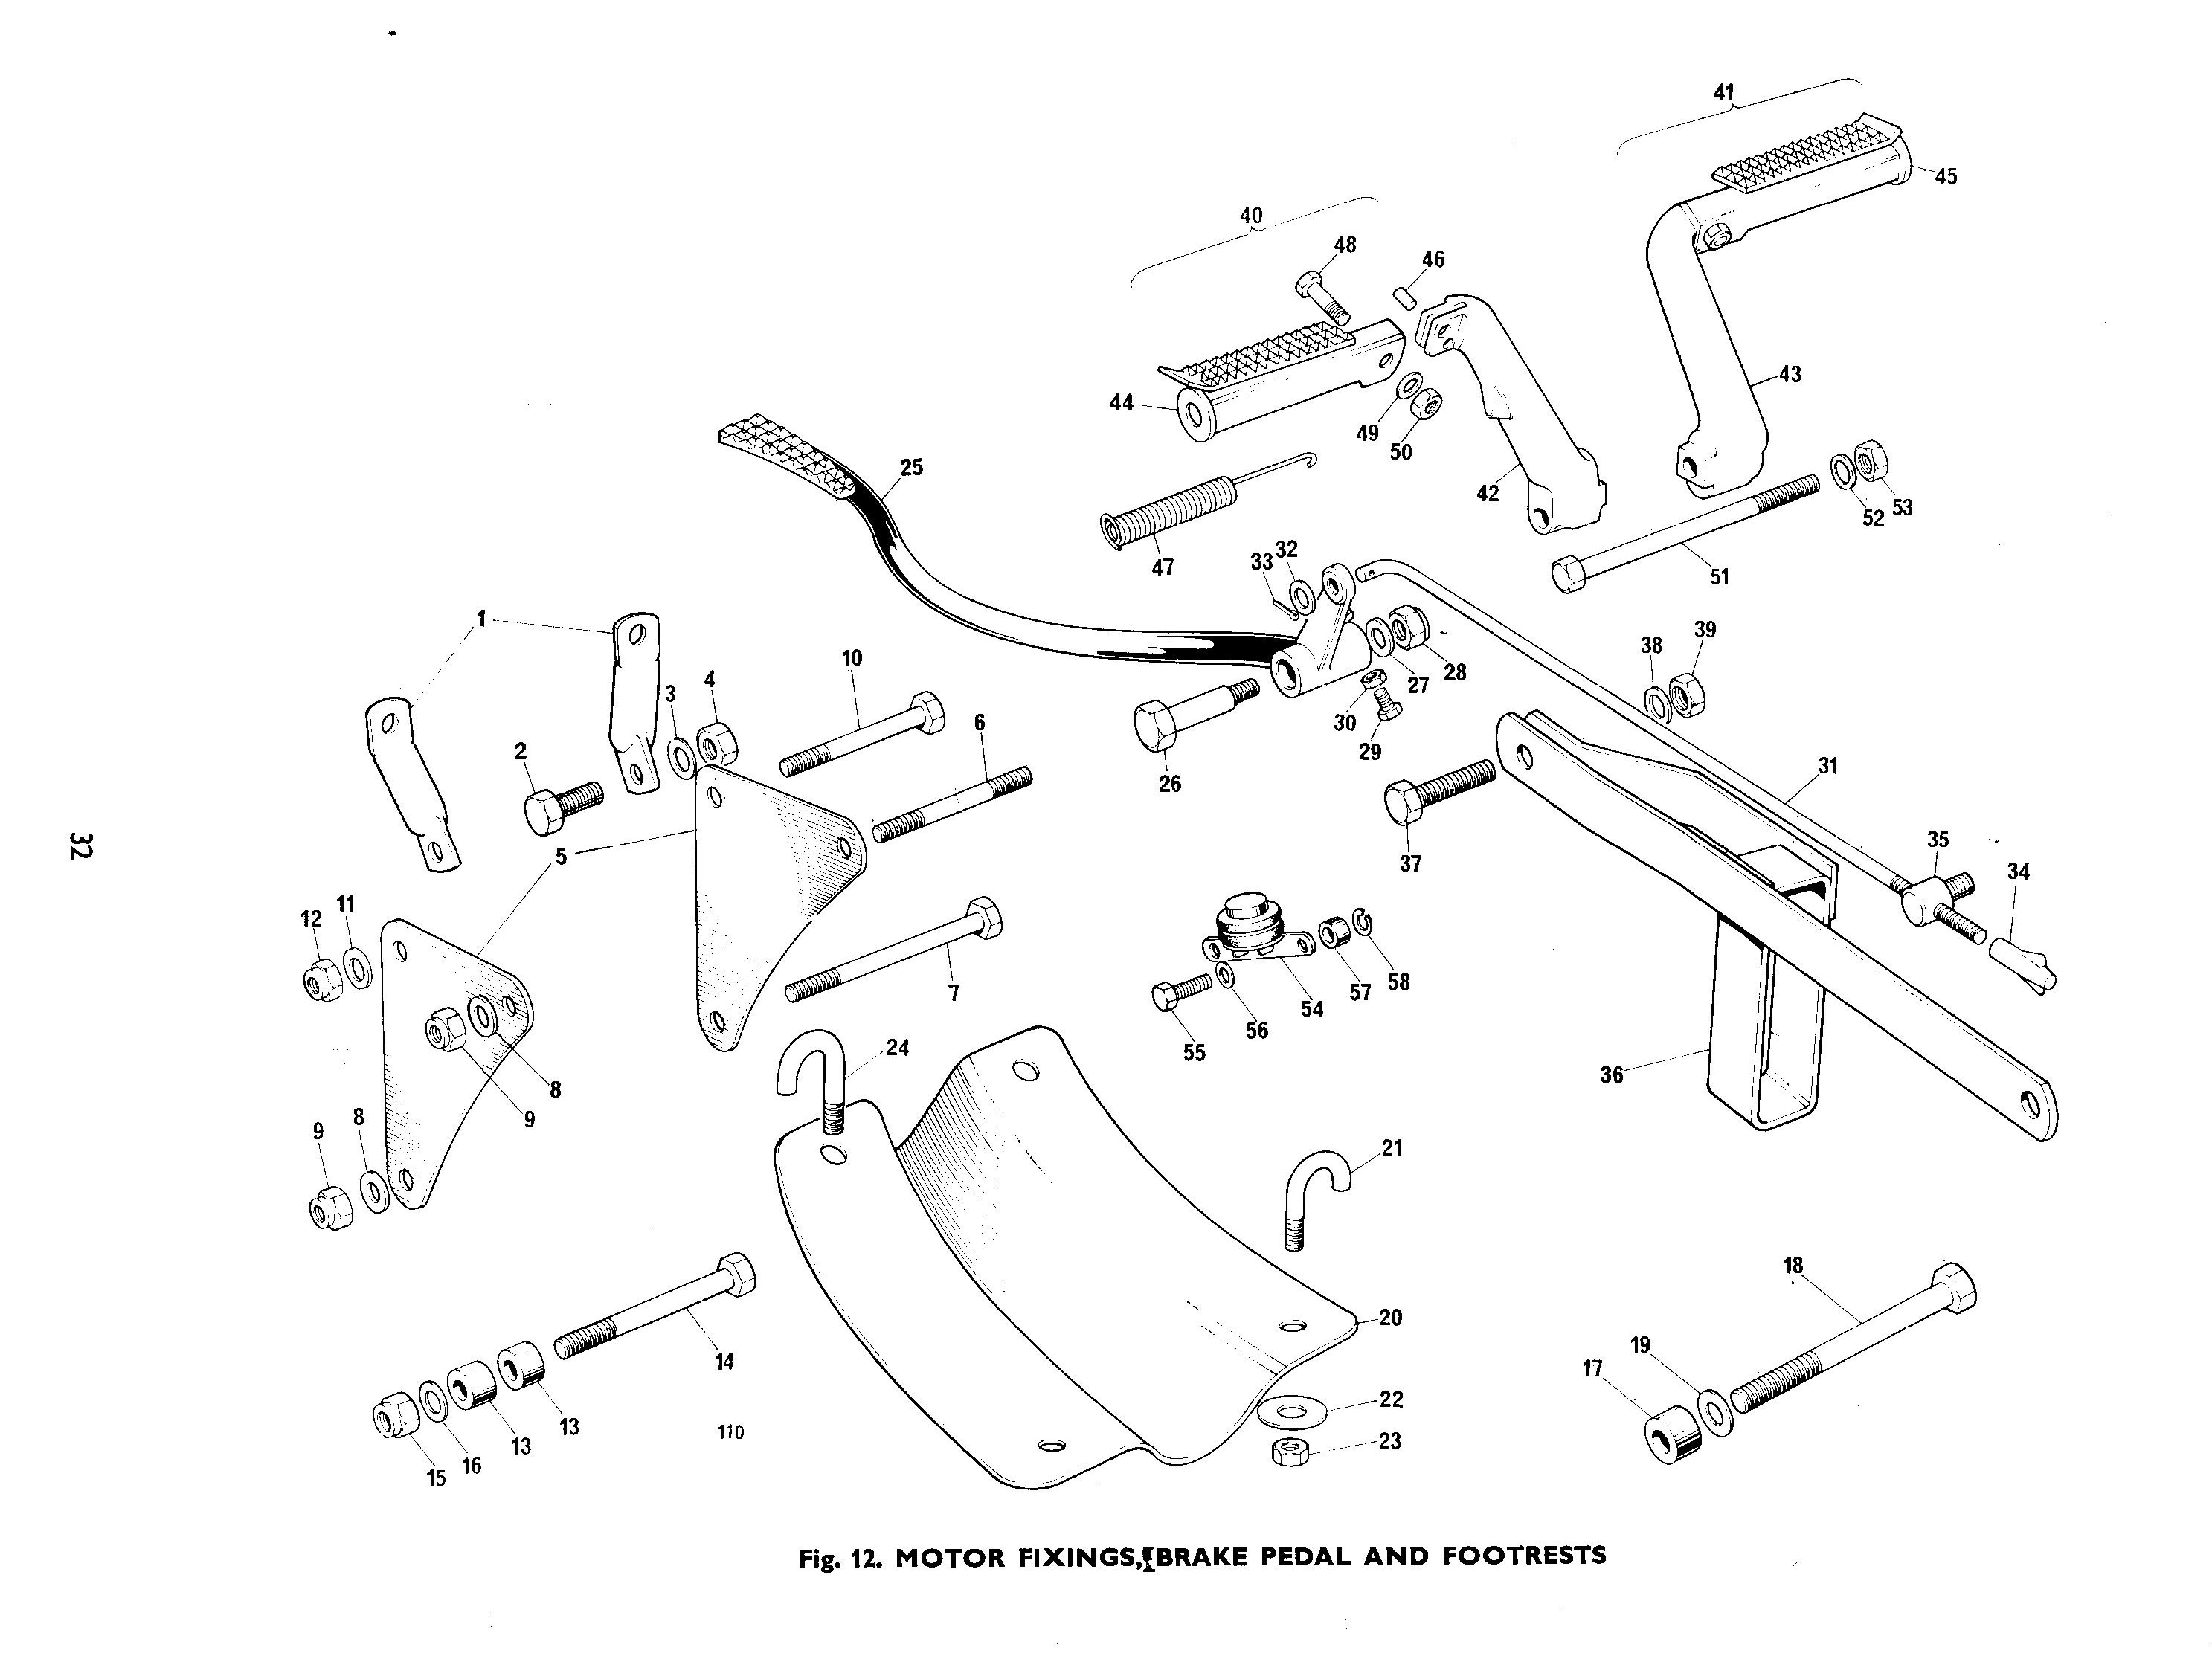 bsa b50 wiring diagram wiring library Electric Trailer Brake Wiring Diagrams bsa b50 wiring diagram